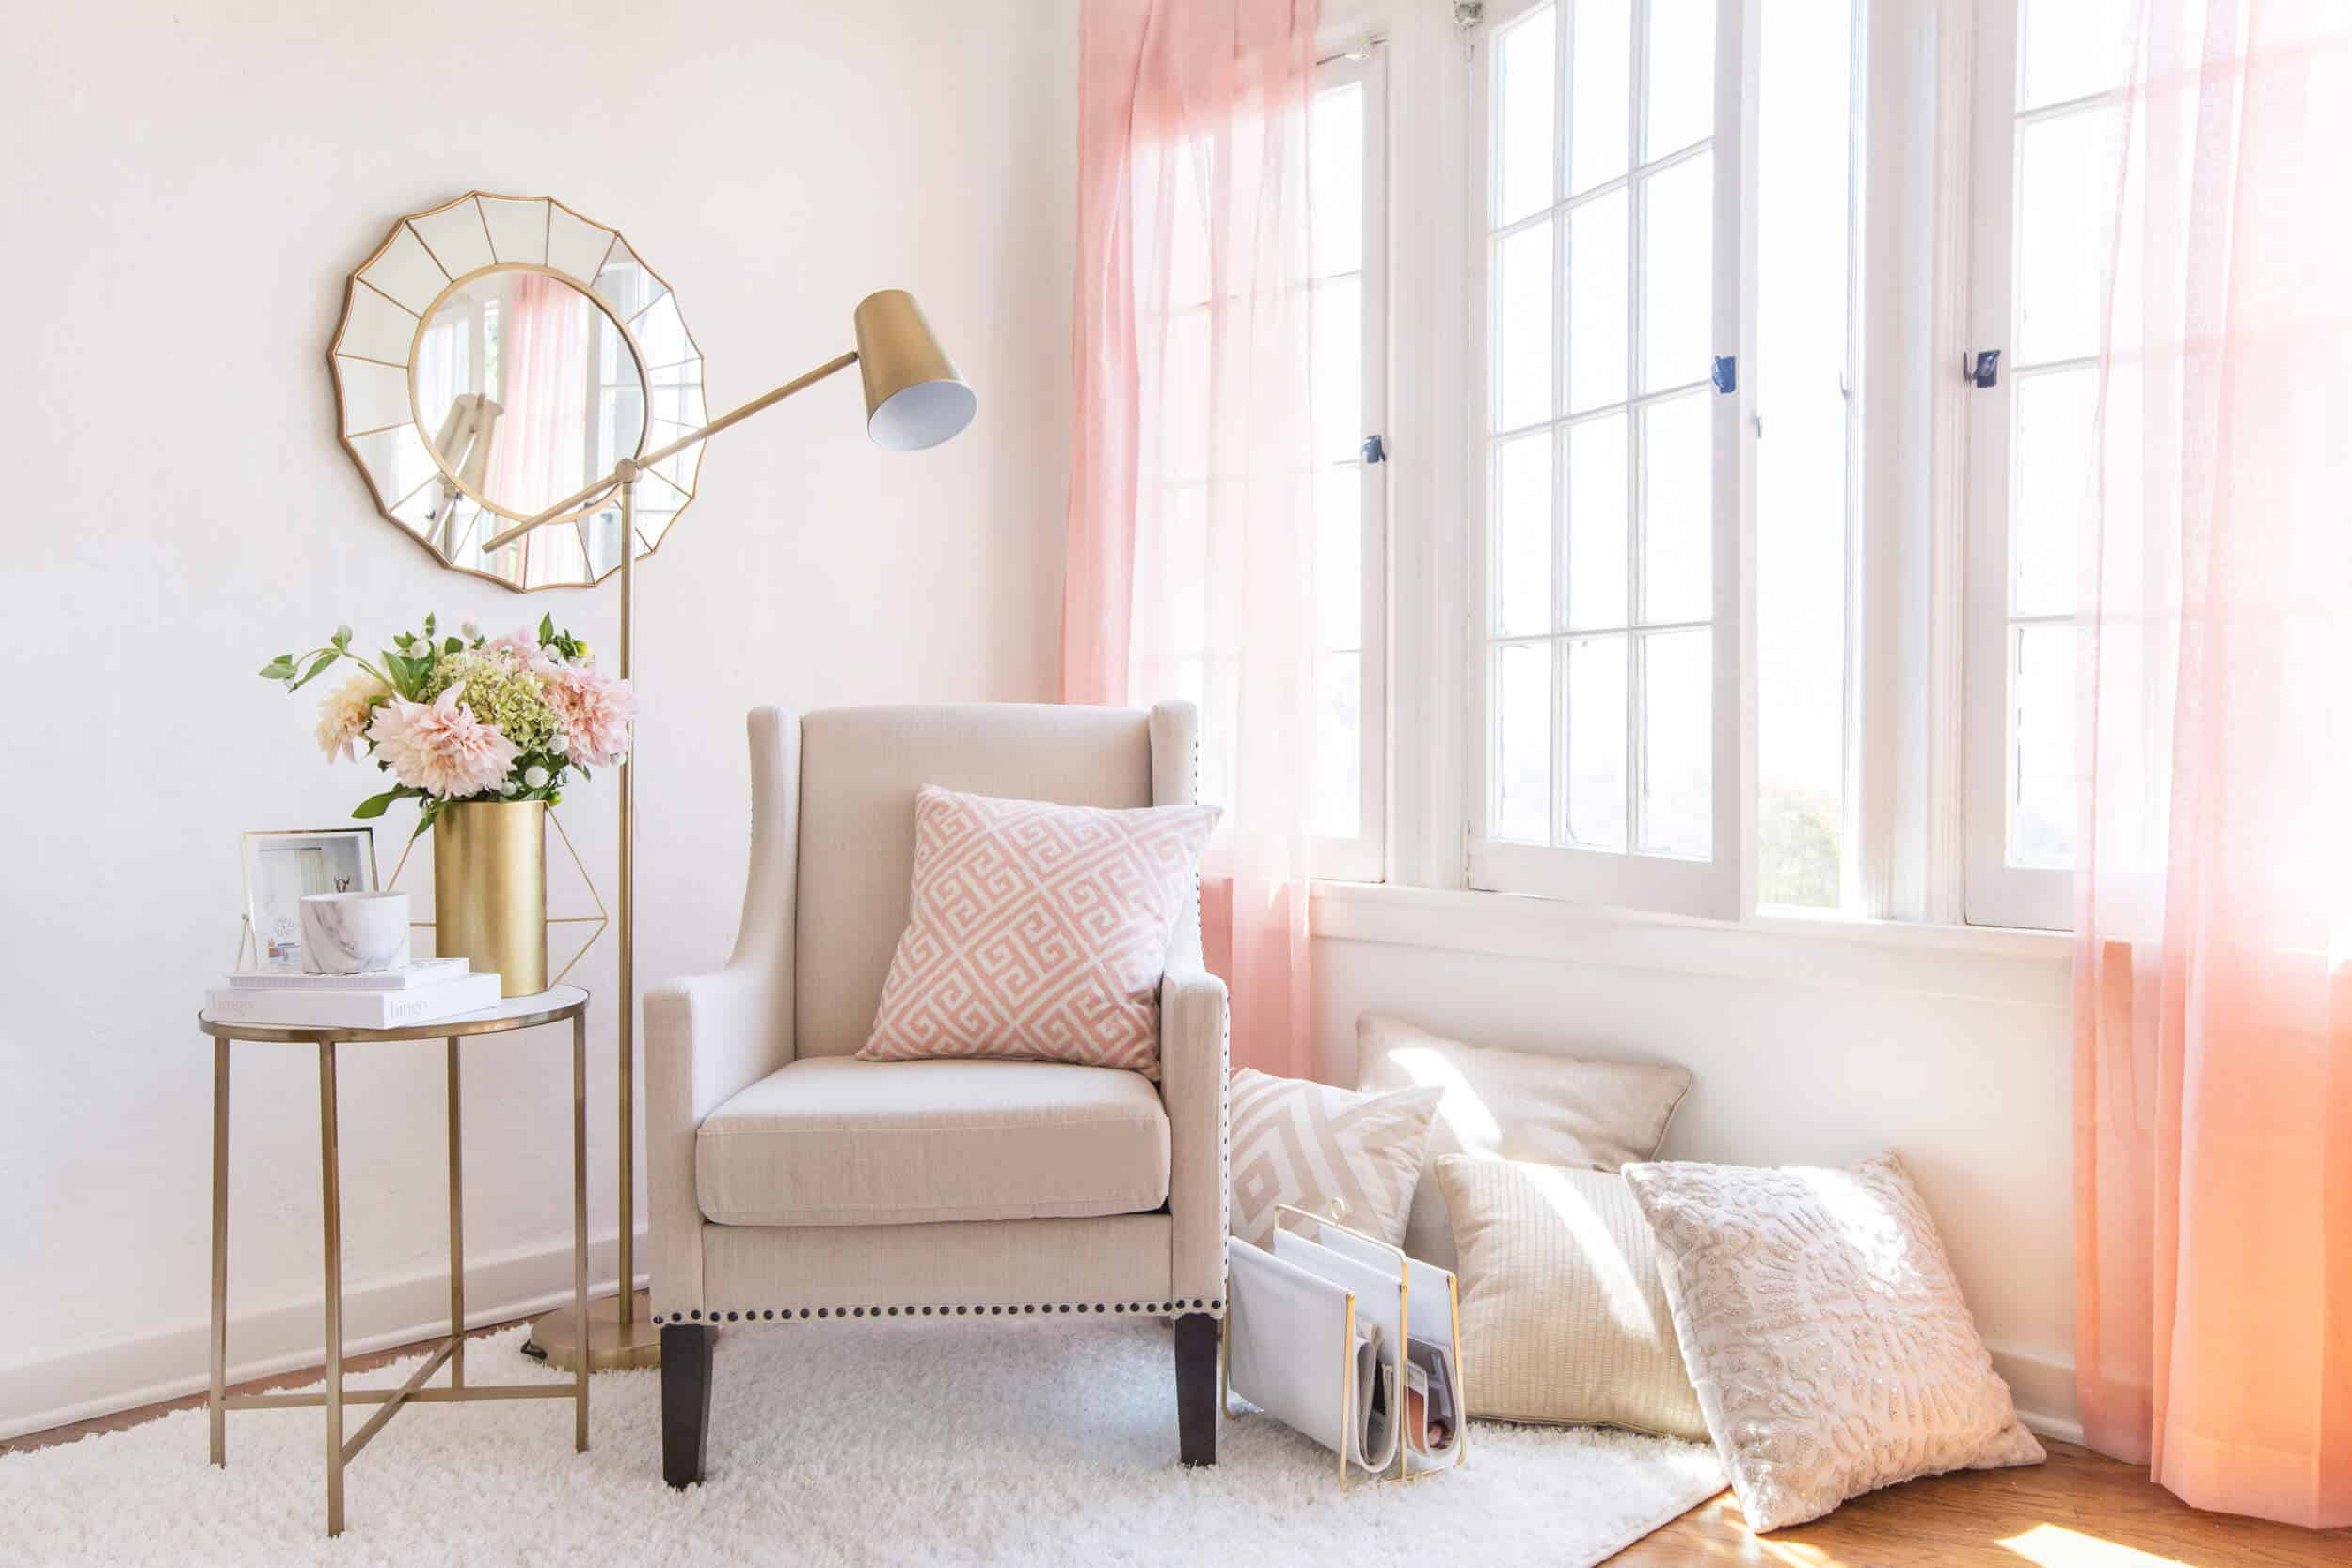 emily-henderson_target_find-your-style_vignette_lux-and-glam_refined_upscale_contemporary_rich_1